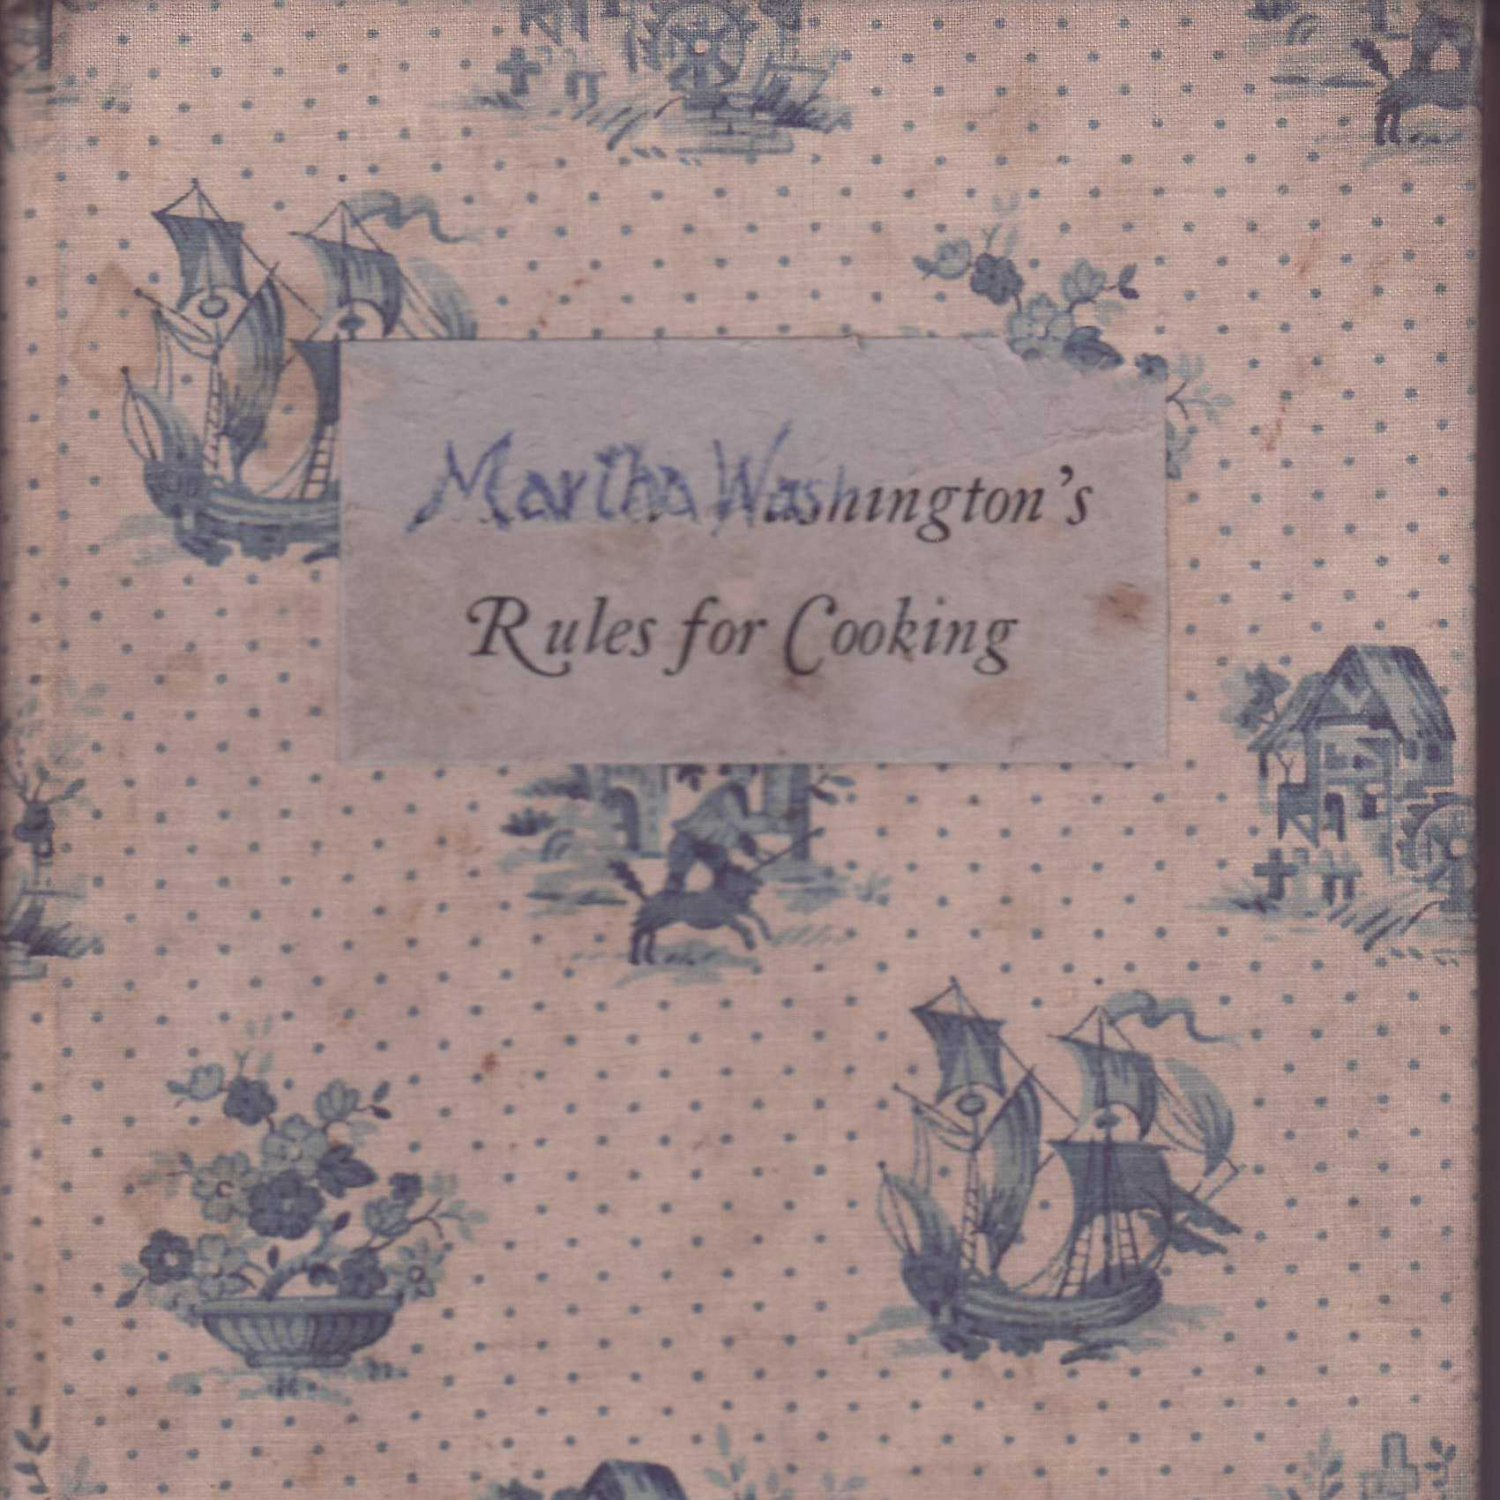 Martha Washington's rules for cooking used everyday at Mt. Vernon First Edition 1931